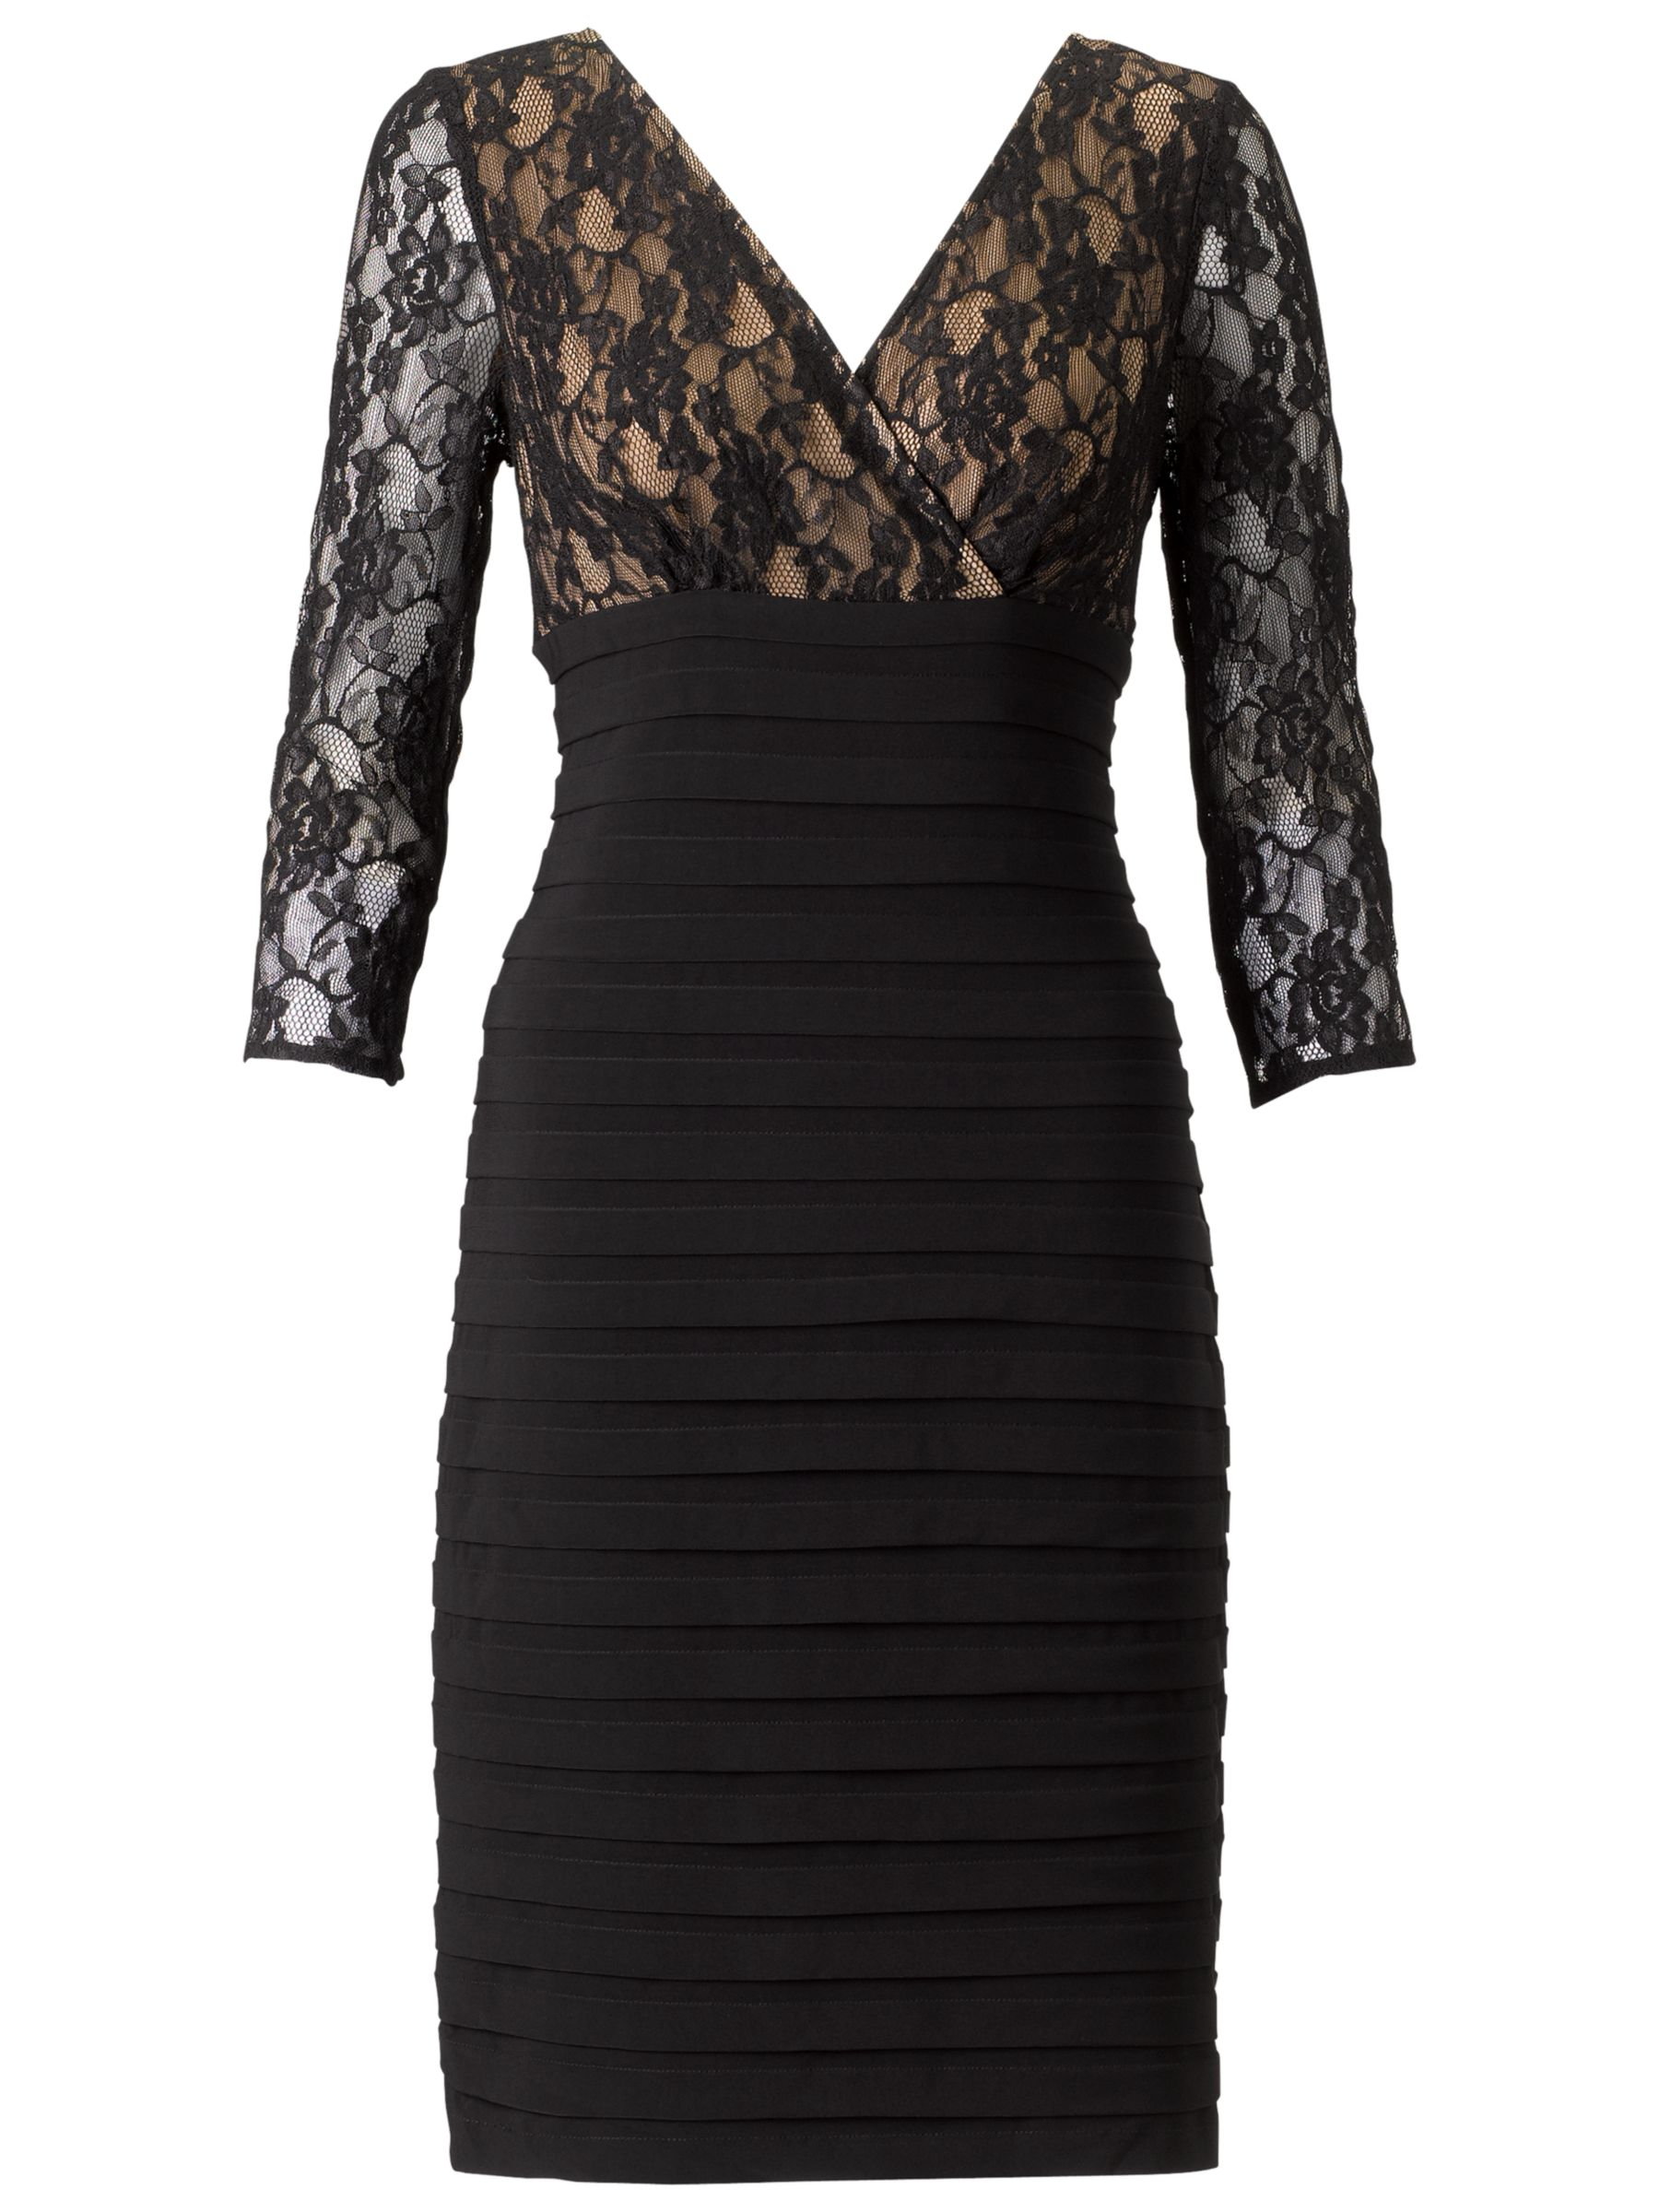 adrianna papell lace sleeved bandage dress black, adrianna, papell, lace, sleeved, bandage, dress, black, adrianna papell, 10|8|14|12, women, plus size, brands a-k, womens dresses, inactive womenswear, dresses, 384069